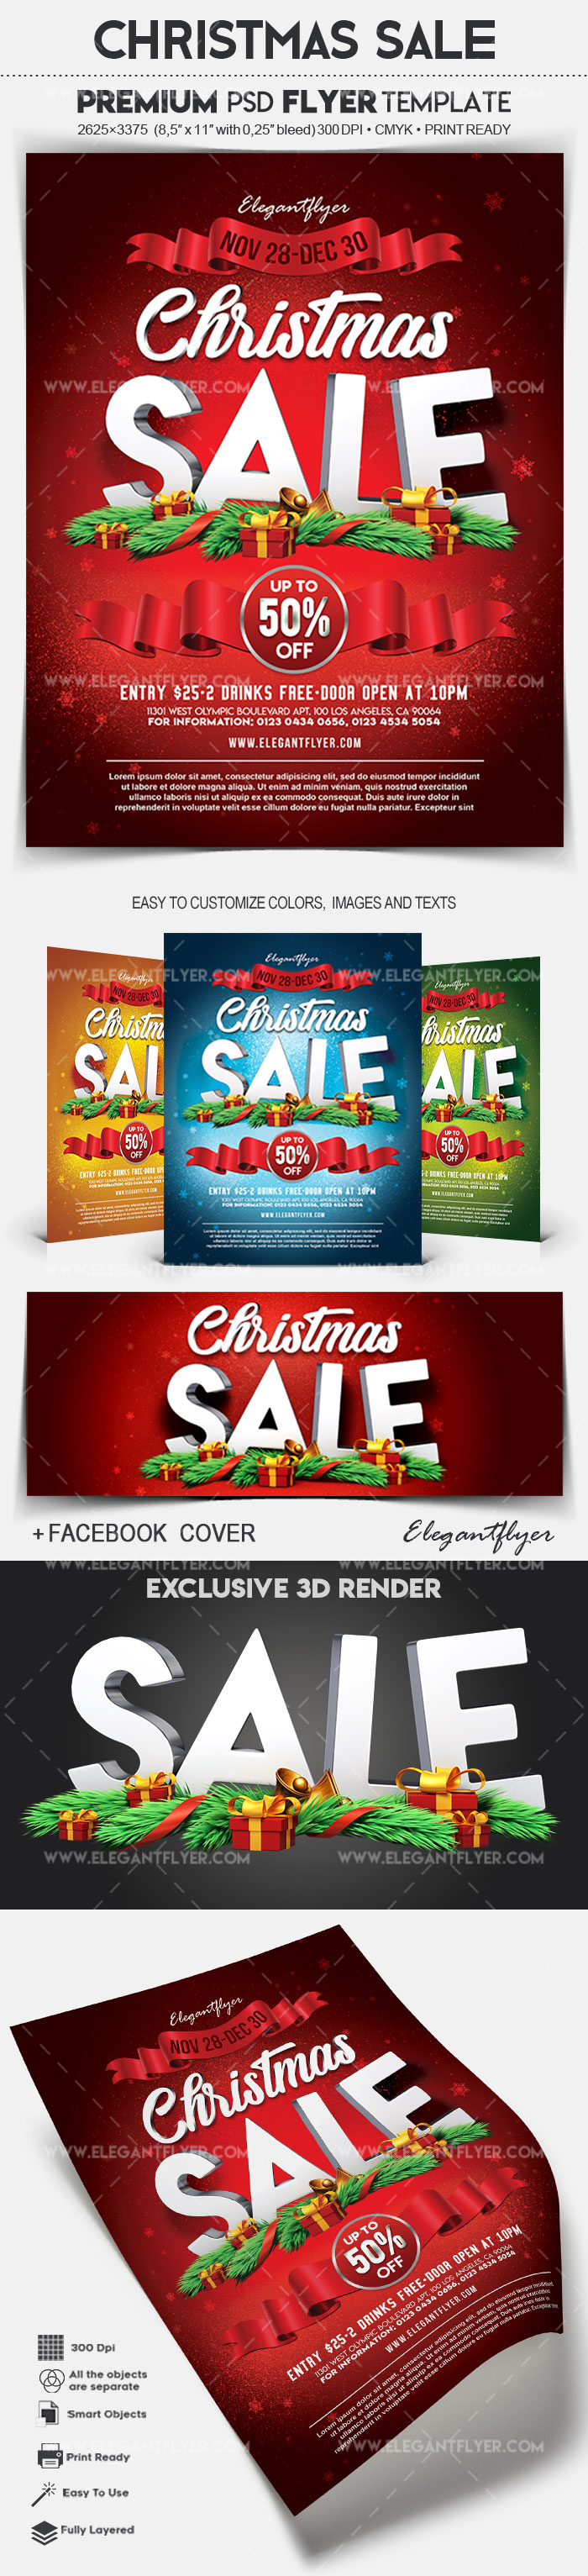 Christmas Tree Sale Poster